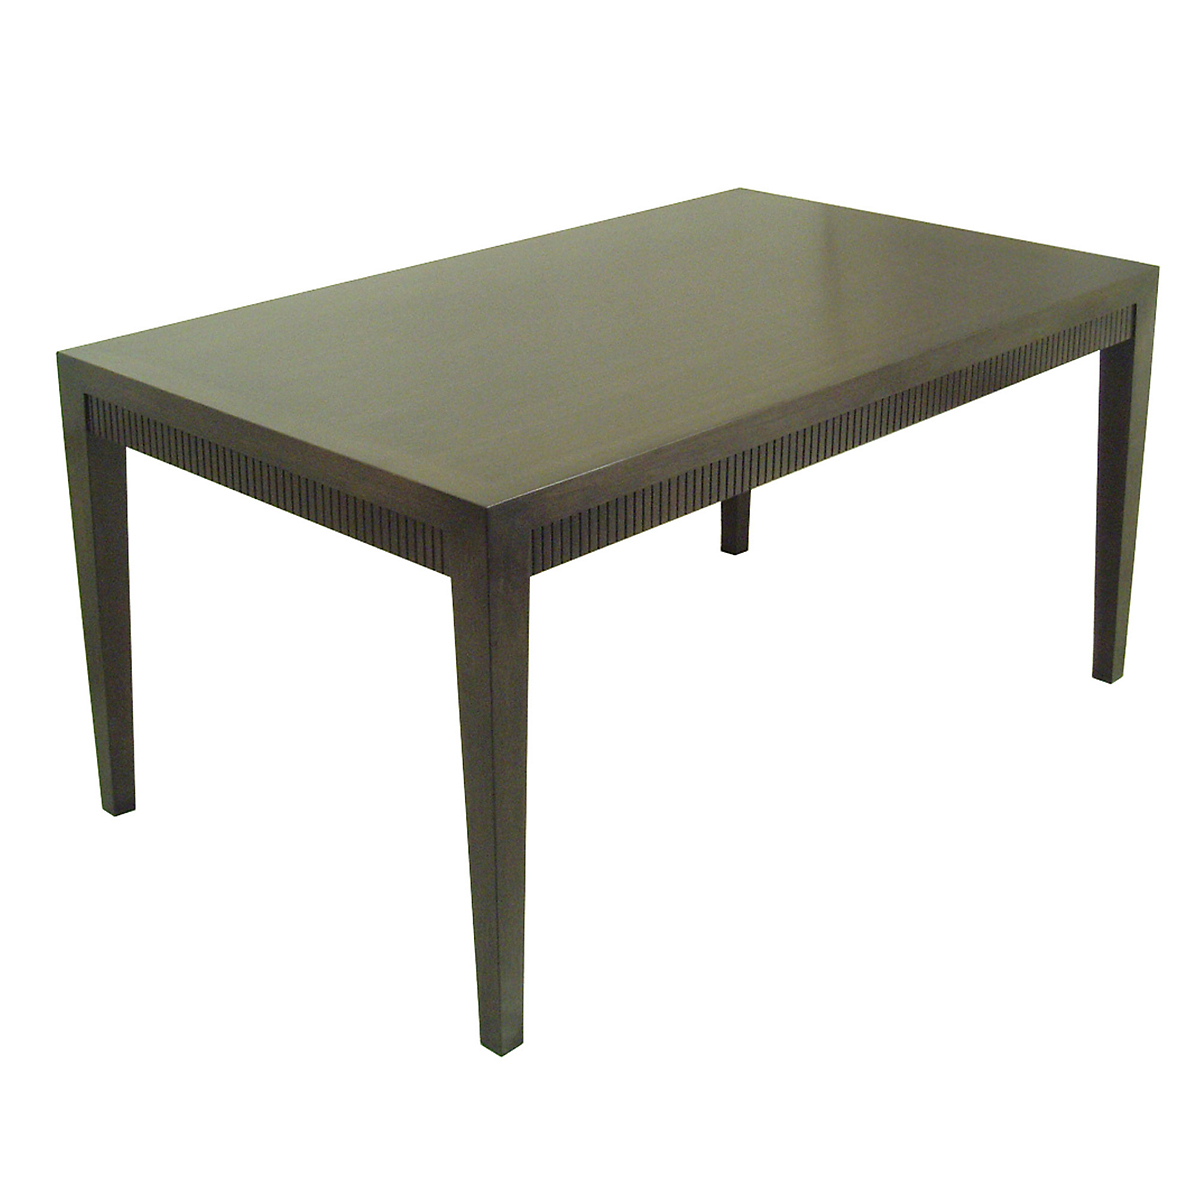 "Maria Yee Laguna 60"" Dining Table"